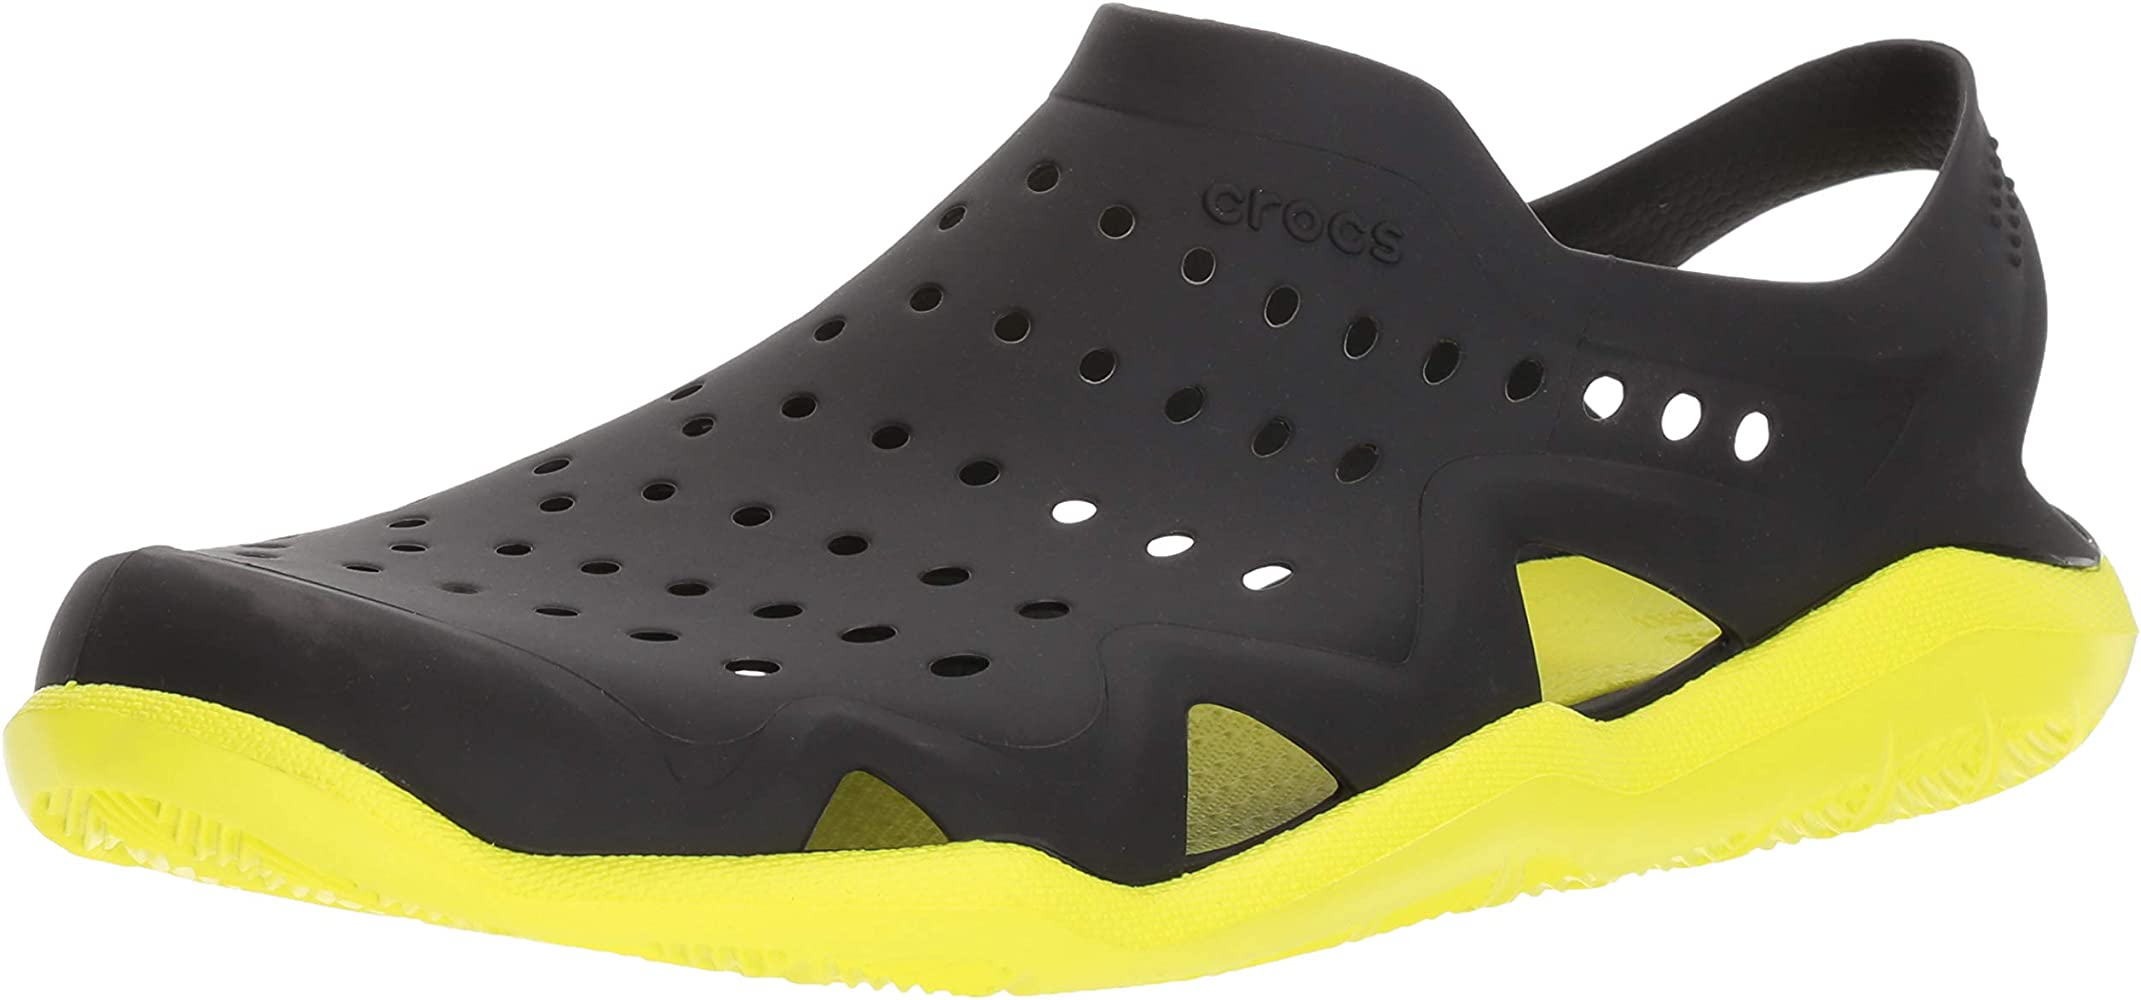 best service 6e320 0f9a4 crocs Herren Sandale Swiftwater Wave M 203963 Black/Tennis ...